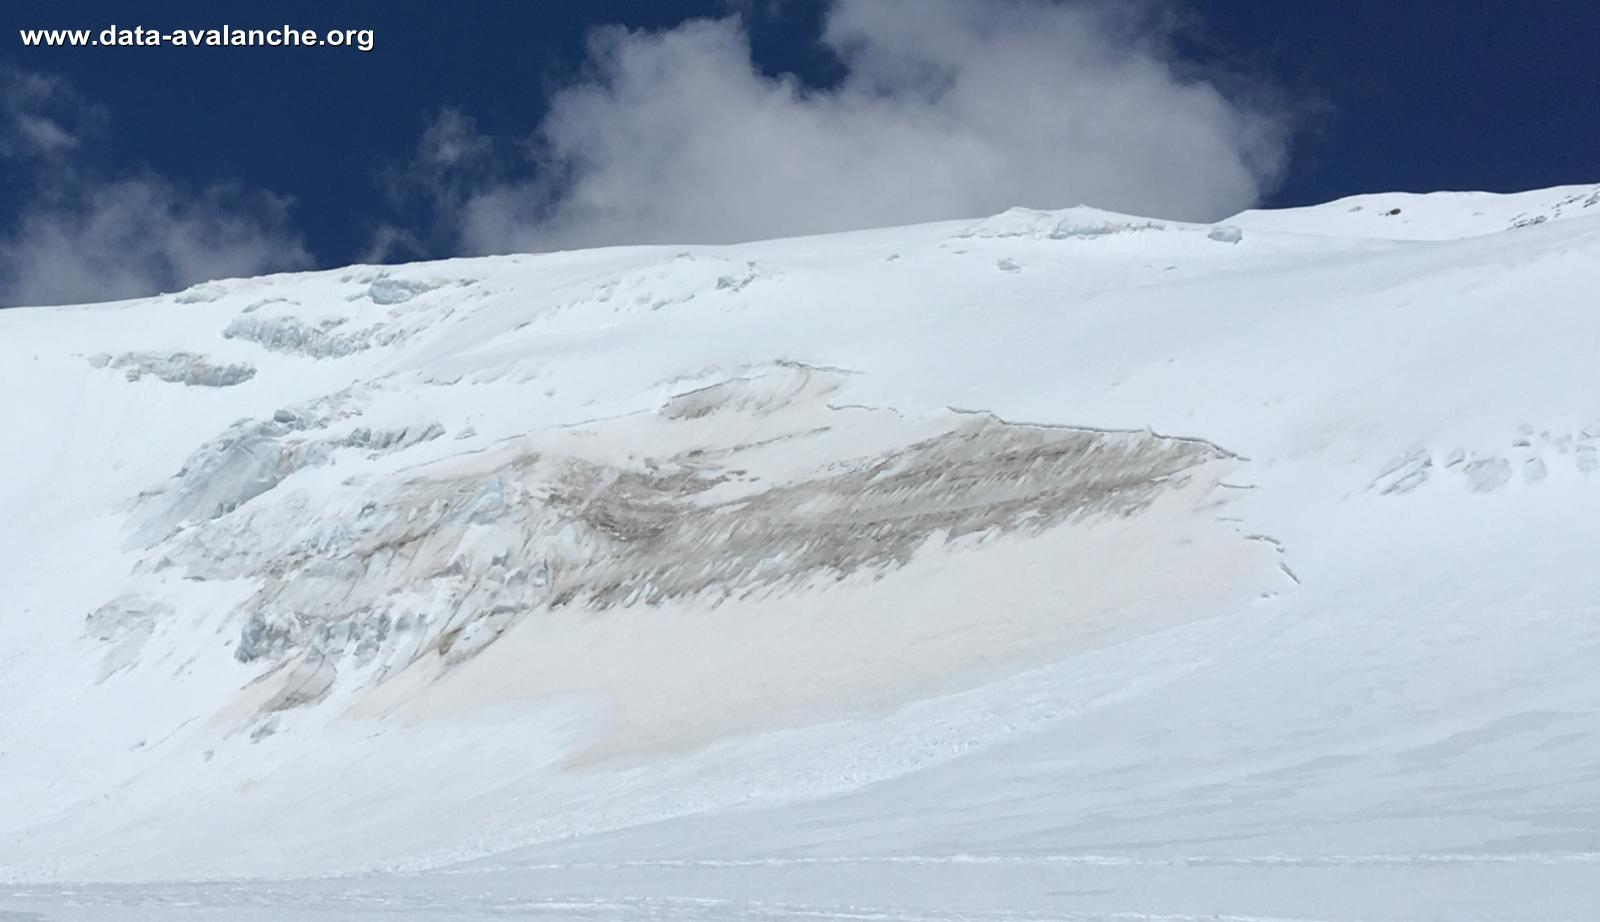 Avalanche Mont Rose, secteur Castor - Photo 1 - © Matteo calcamugi